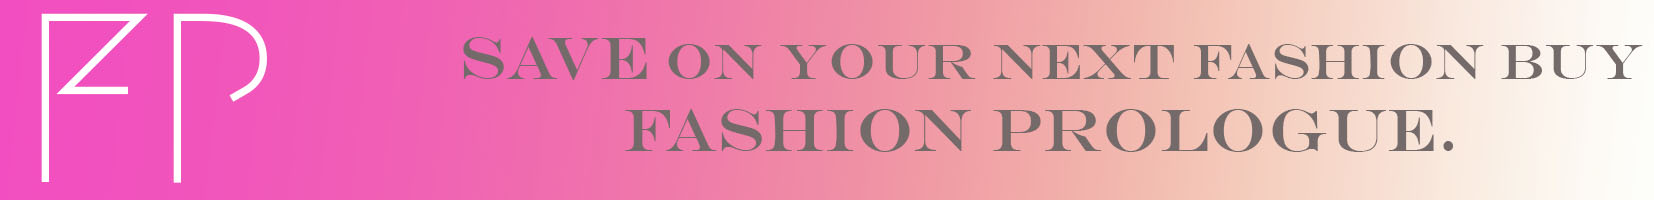 Fashion Prologue - save on fashion banner-pink.jpg